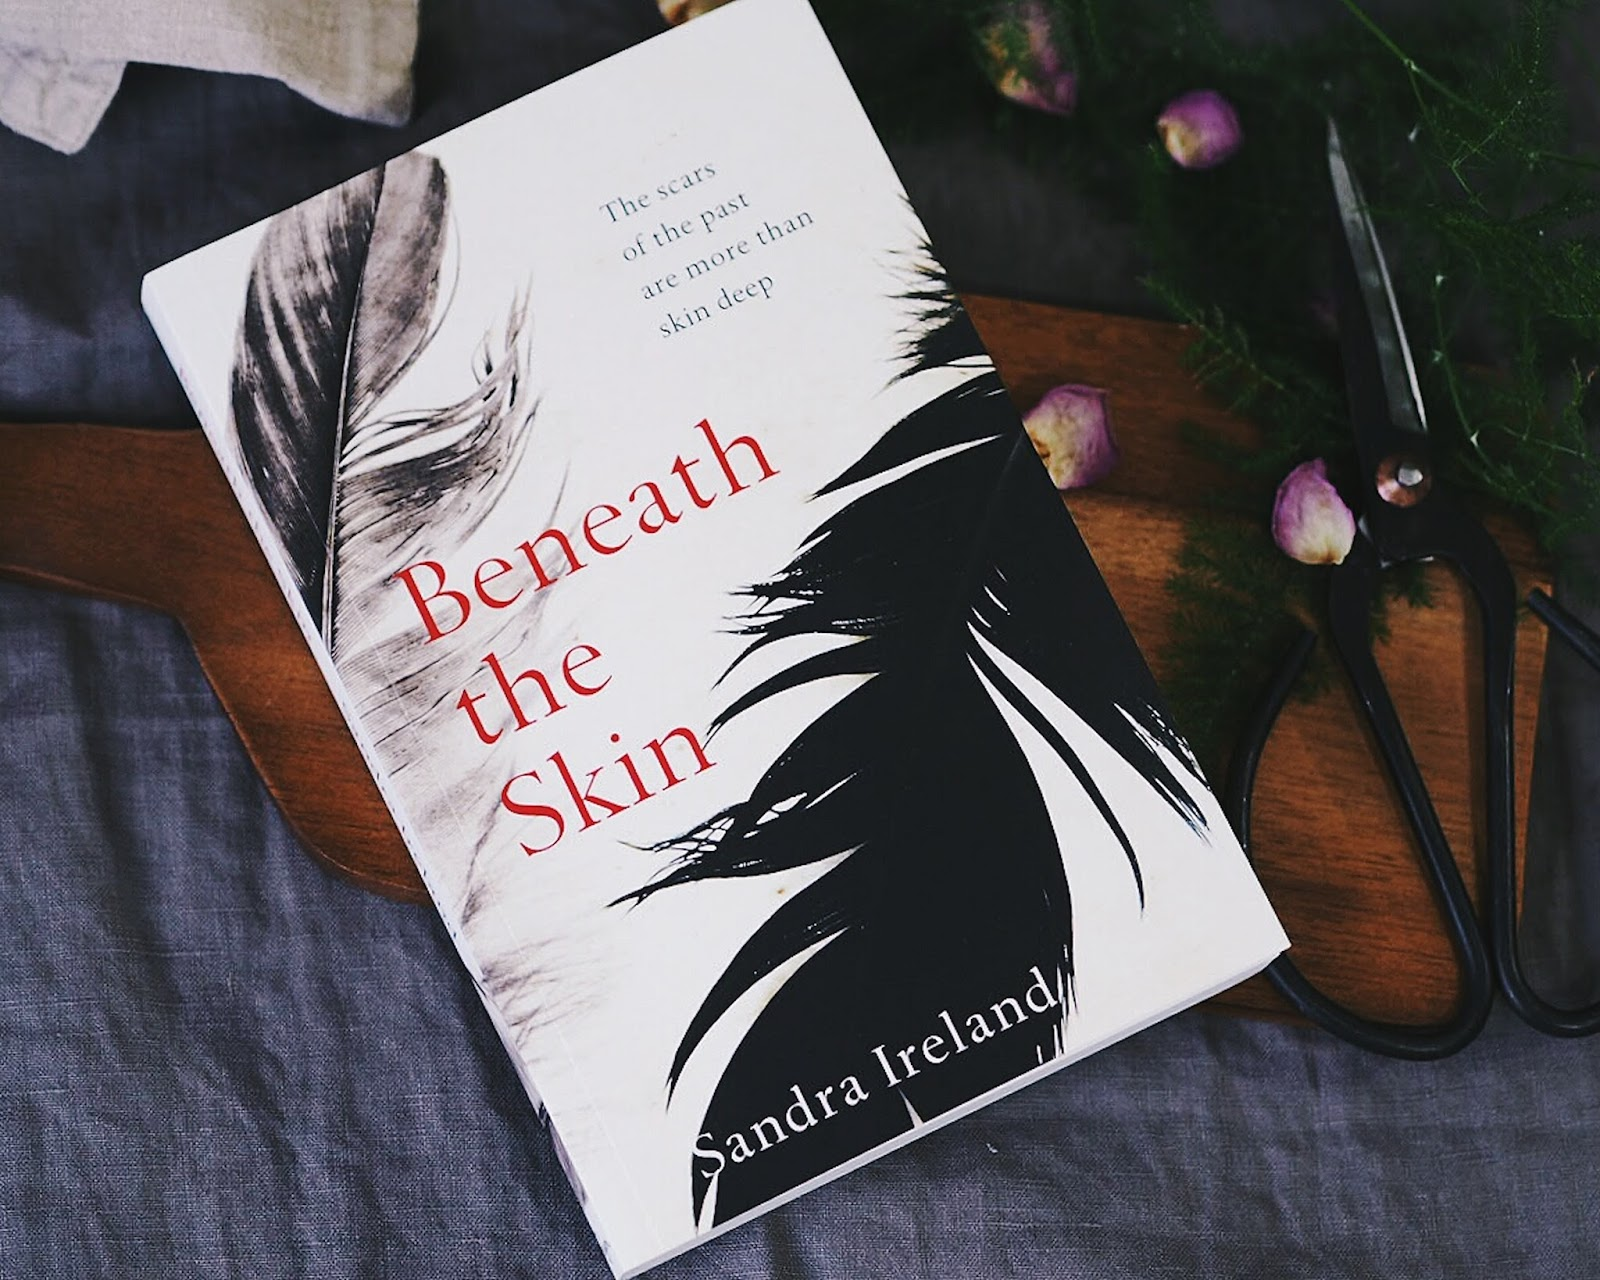 review of beneath the skin by Sandra Ireland